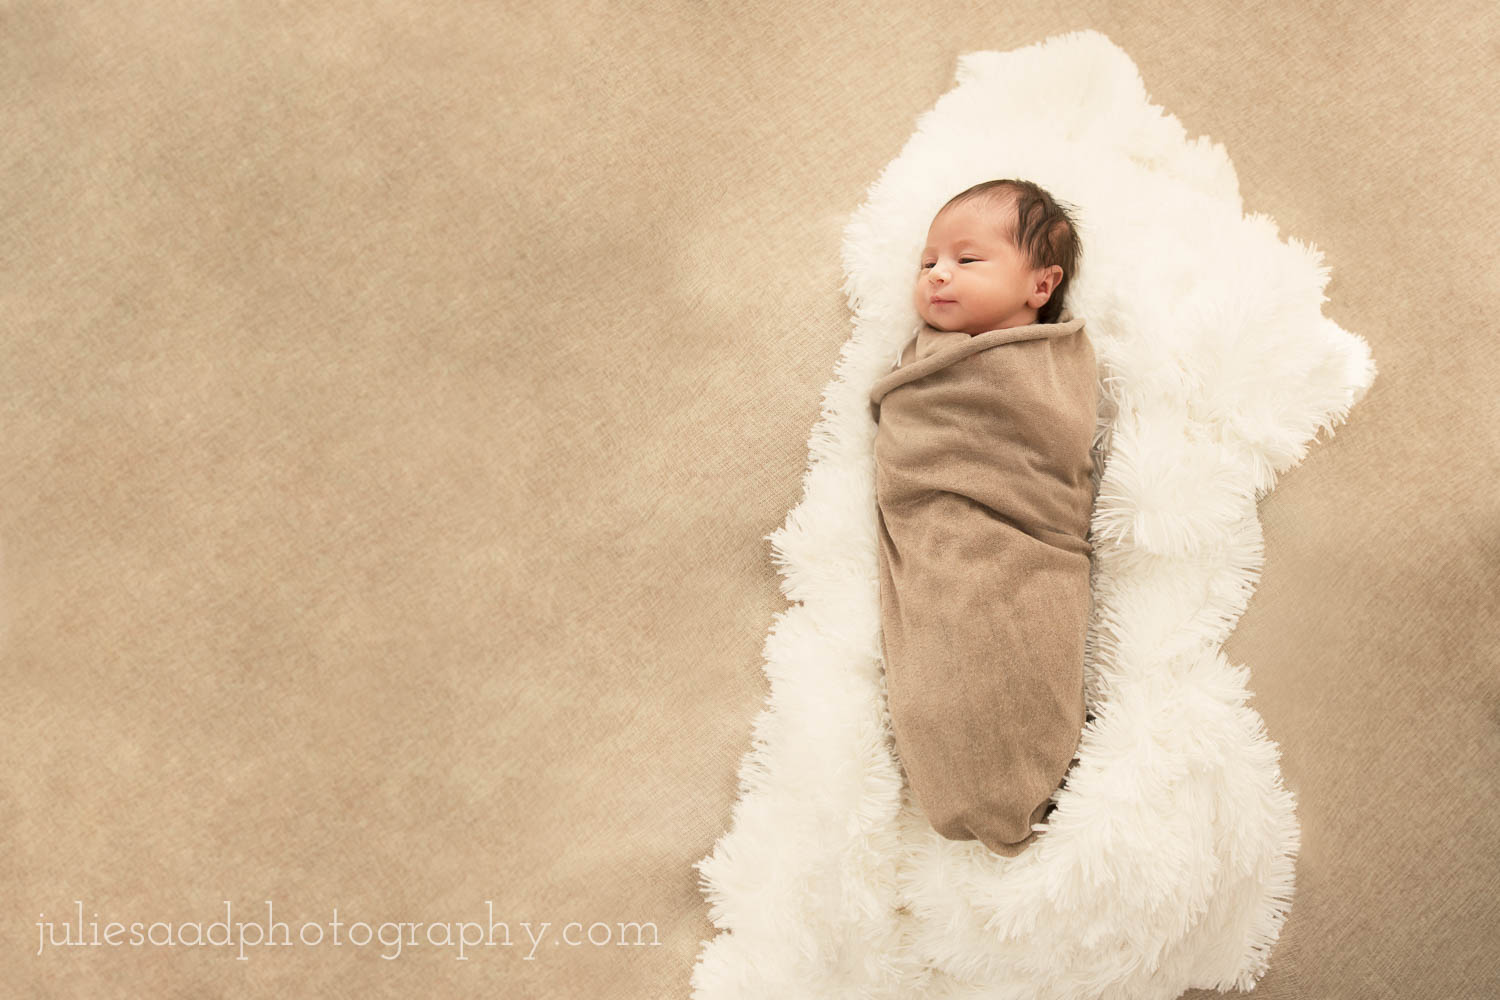 Newborn photography in Brooklyn, NY. Beautiful baby girl swaddled on comfy cotton rug atop burlap backdrop. Creating an image like this with some extra space for text is an excellent idea for birth announcements.